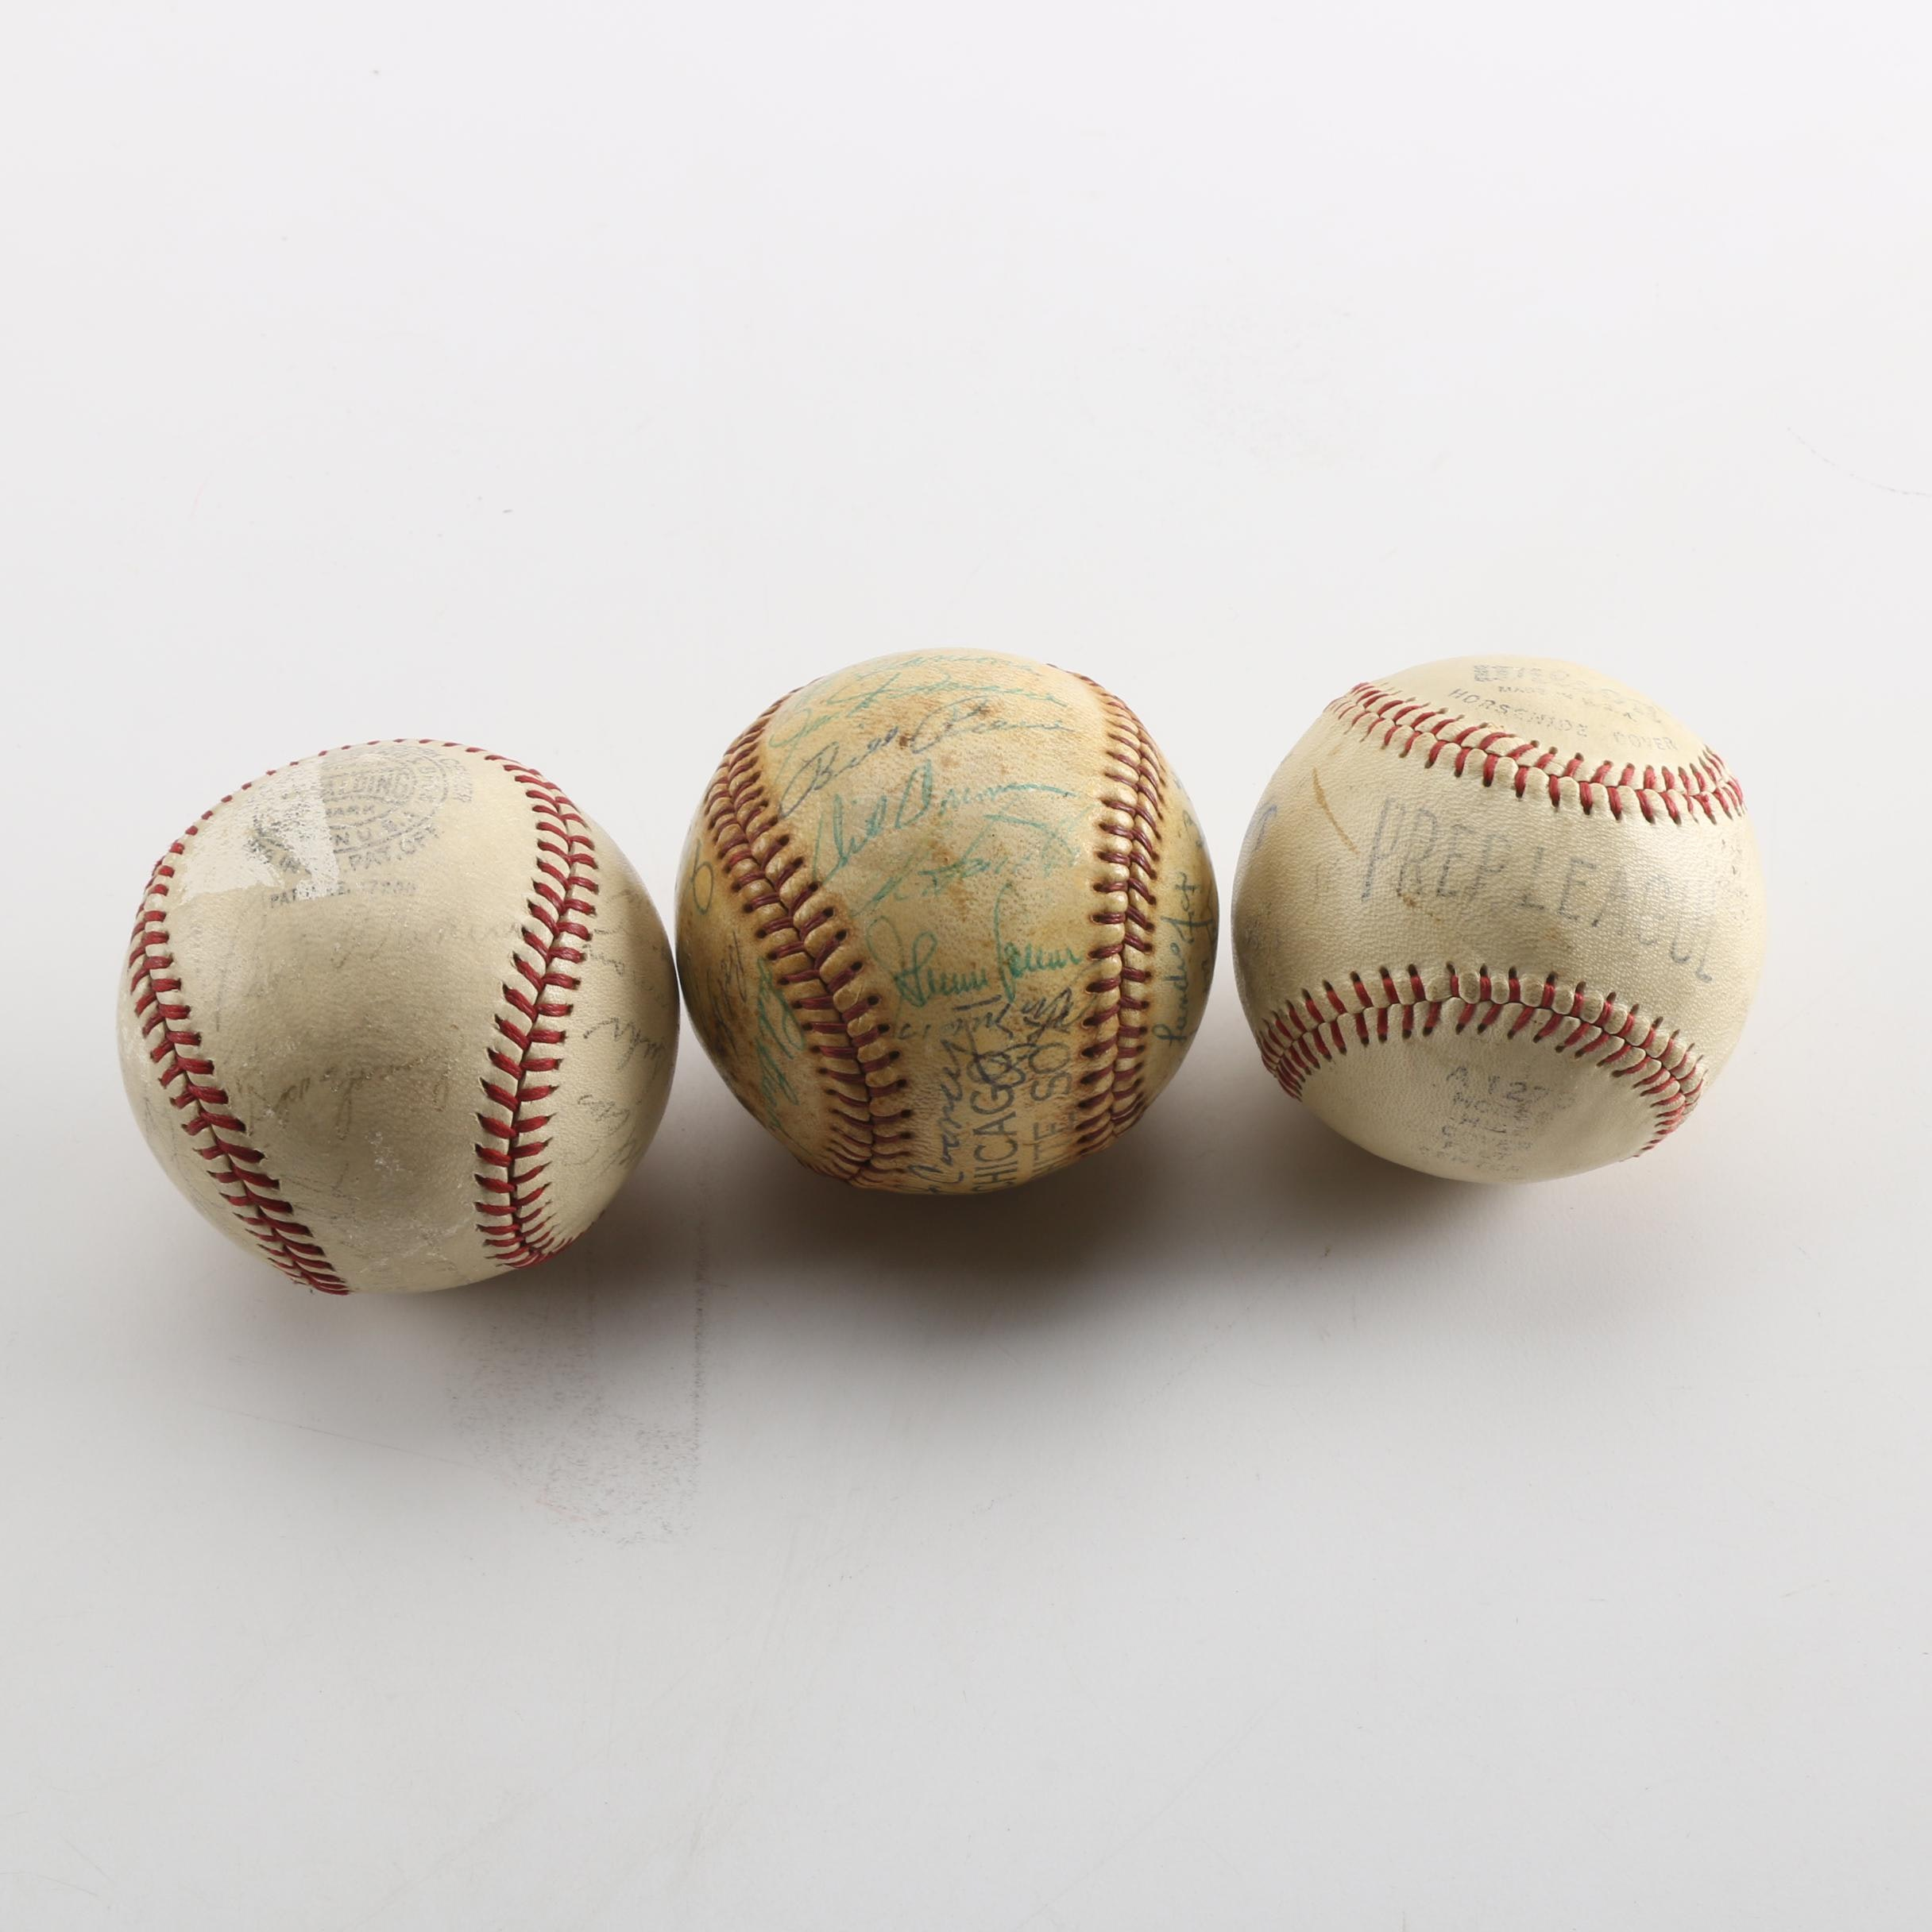 Autographed Baseballs including 1956 Chicago White Sox